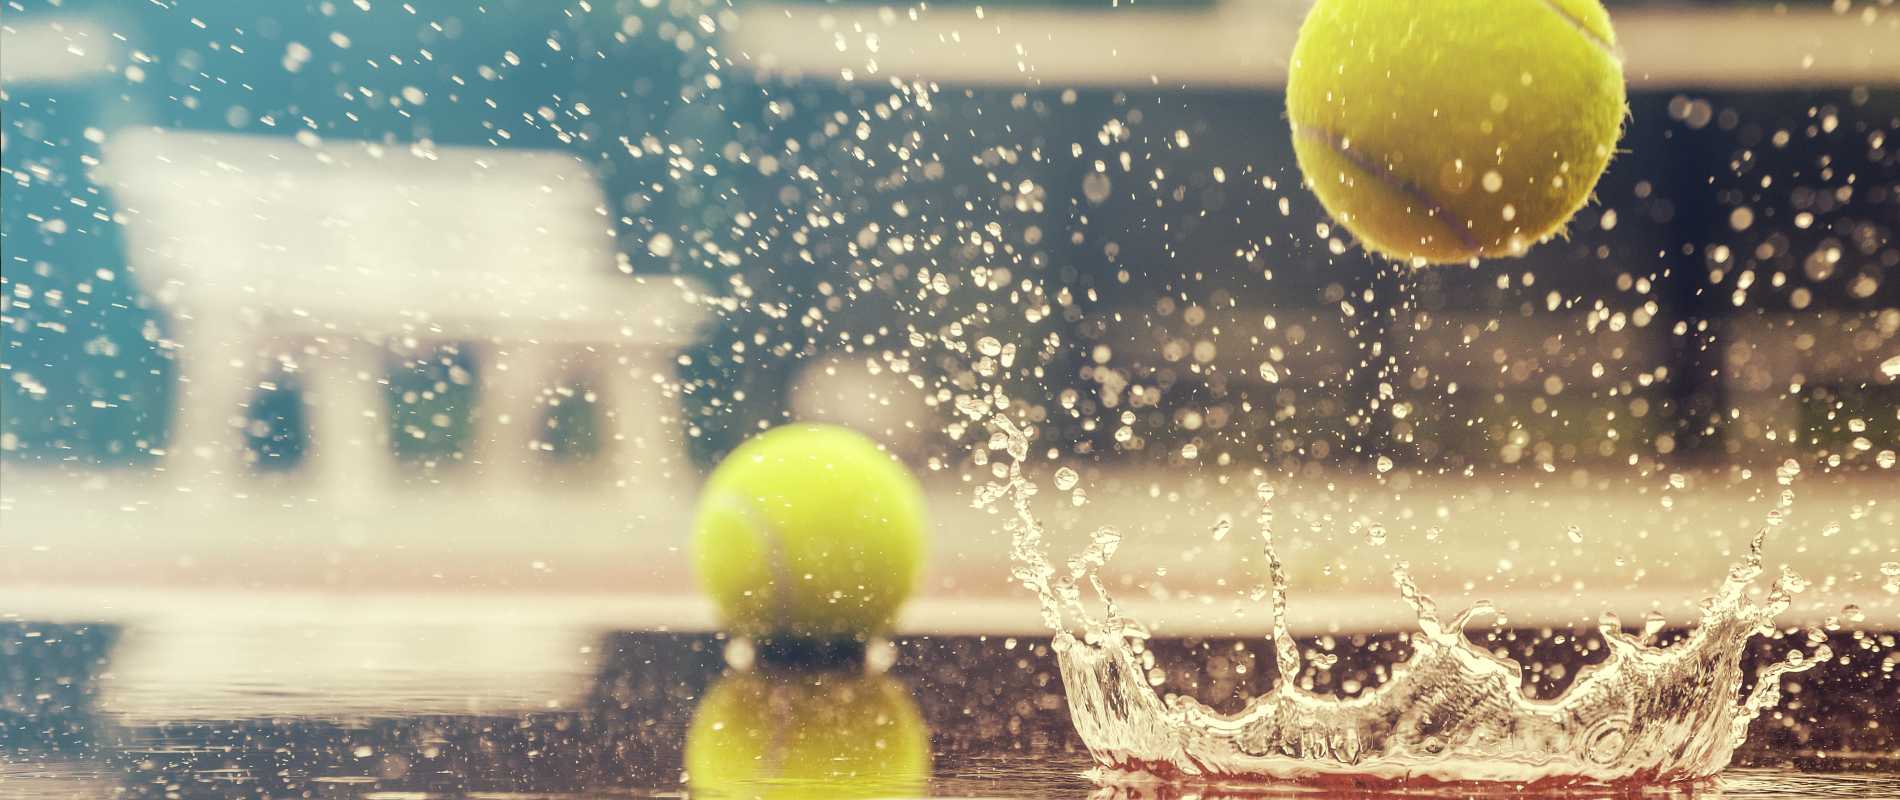 tennis_ball_splashing_slider_1900x800_flipped